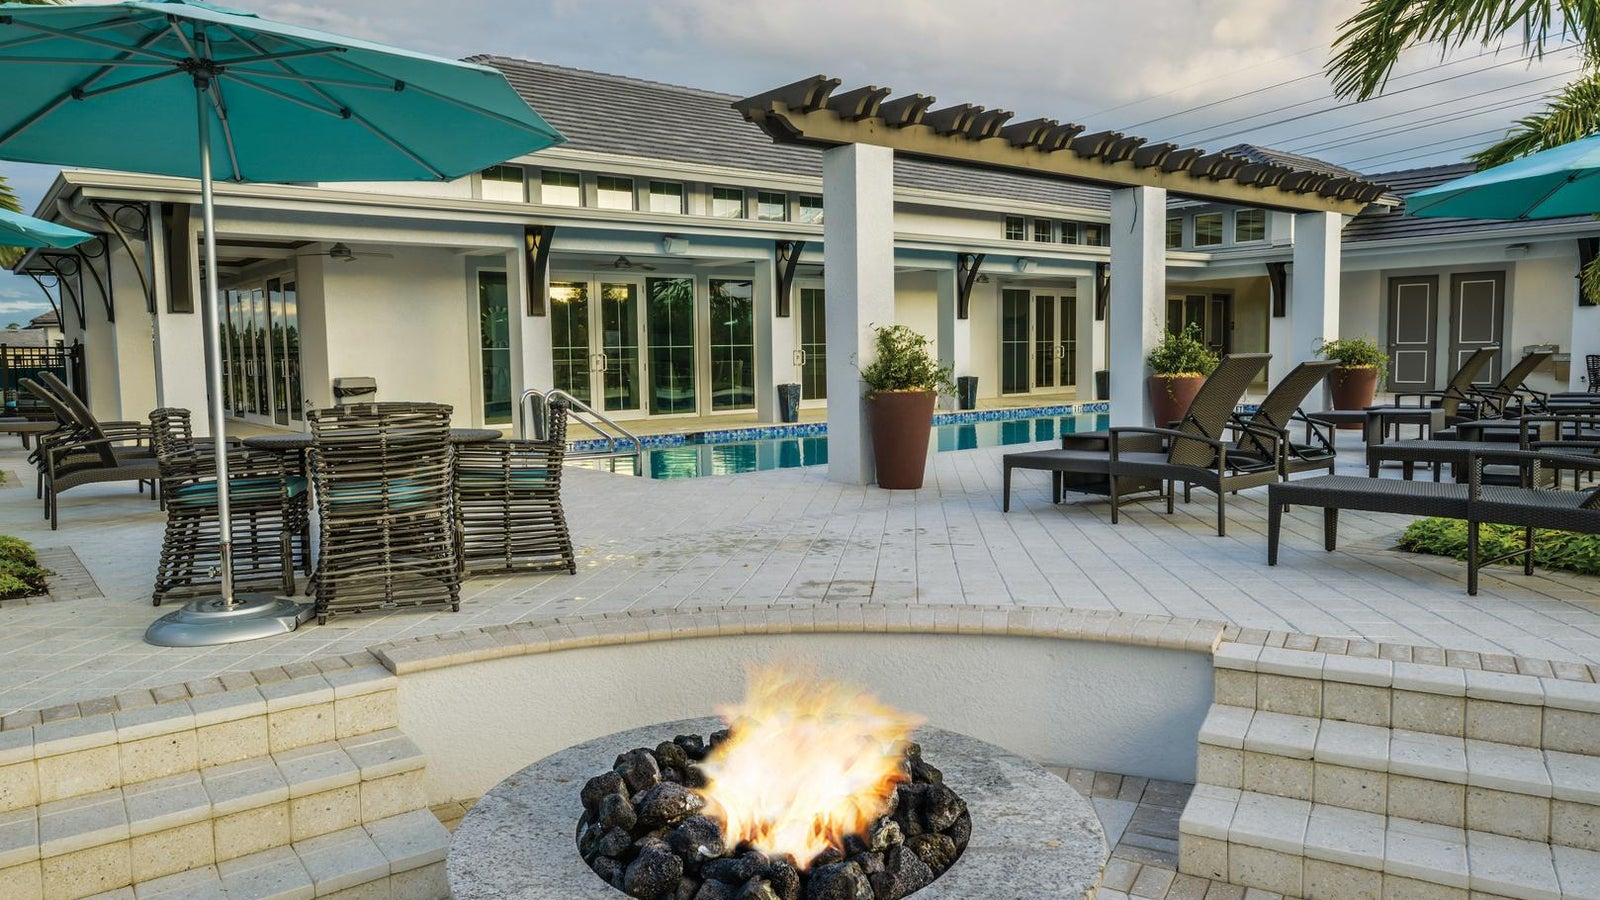 Fire Pit at The Clubhouse of Hidden Harbor in Fort Myers Florida